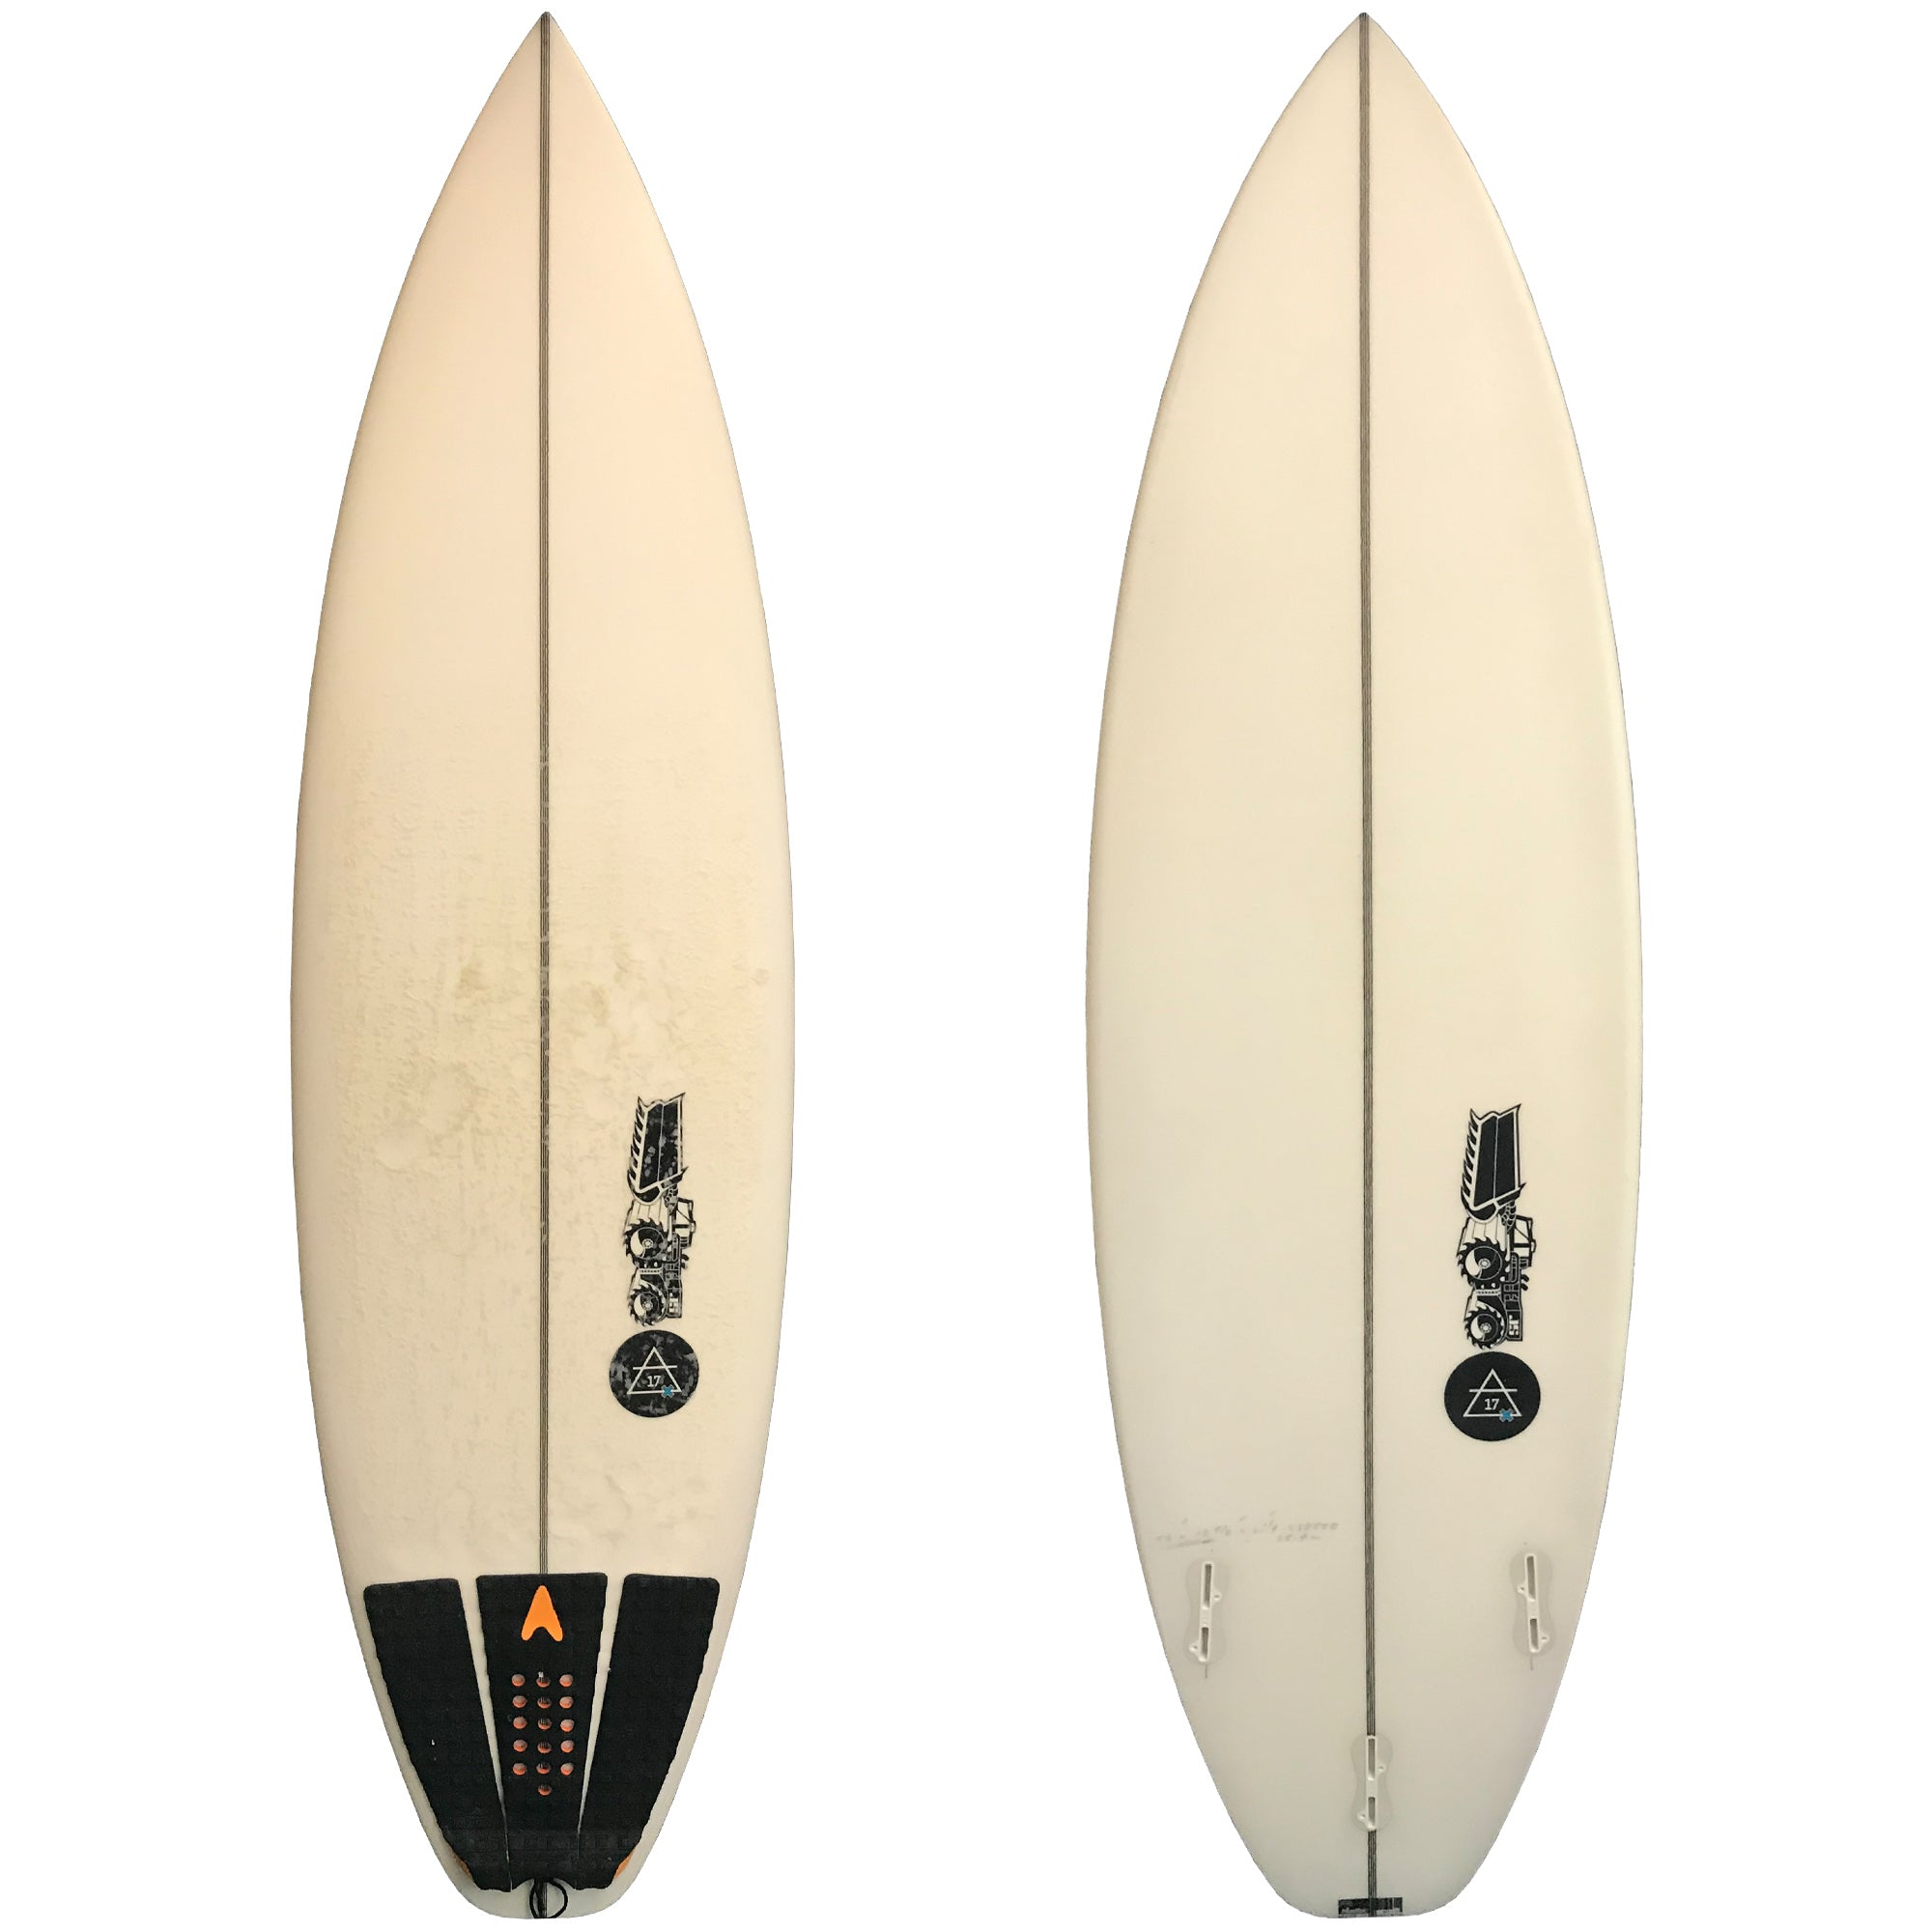 "JS ""Air 17 X"" 5'8 Used Surfboard"